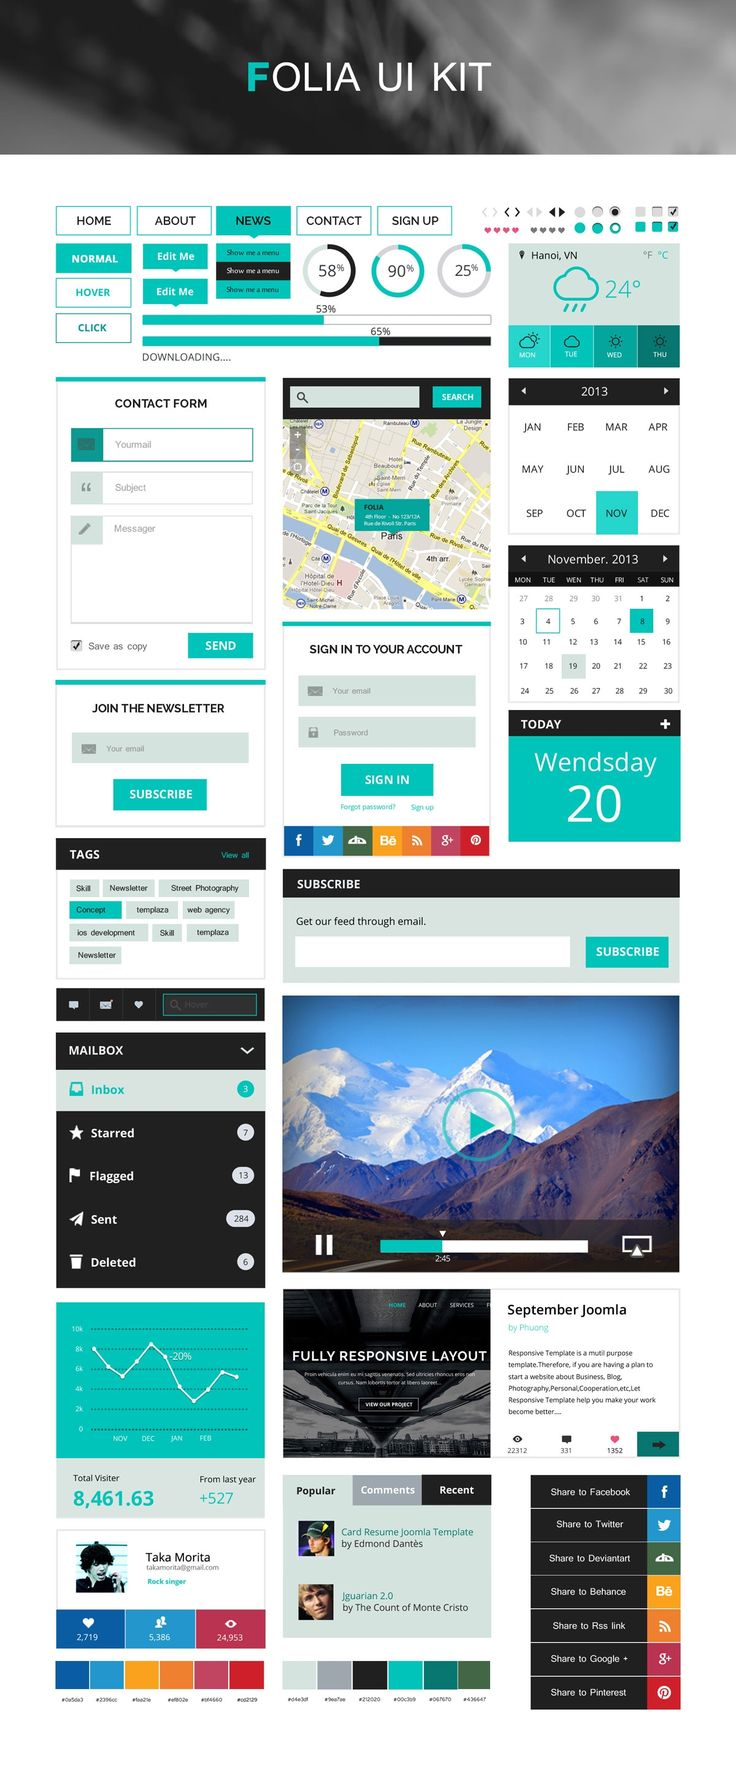 Based on Flat Design Style, Folia UI Kit is expected to satisfy all website developers thanks to its simplicity and high usability.